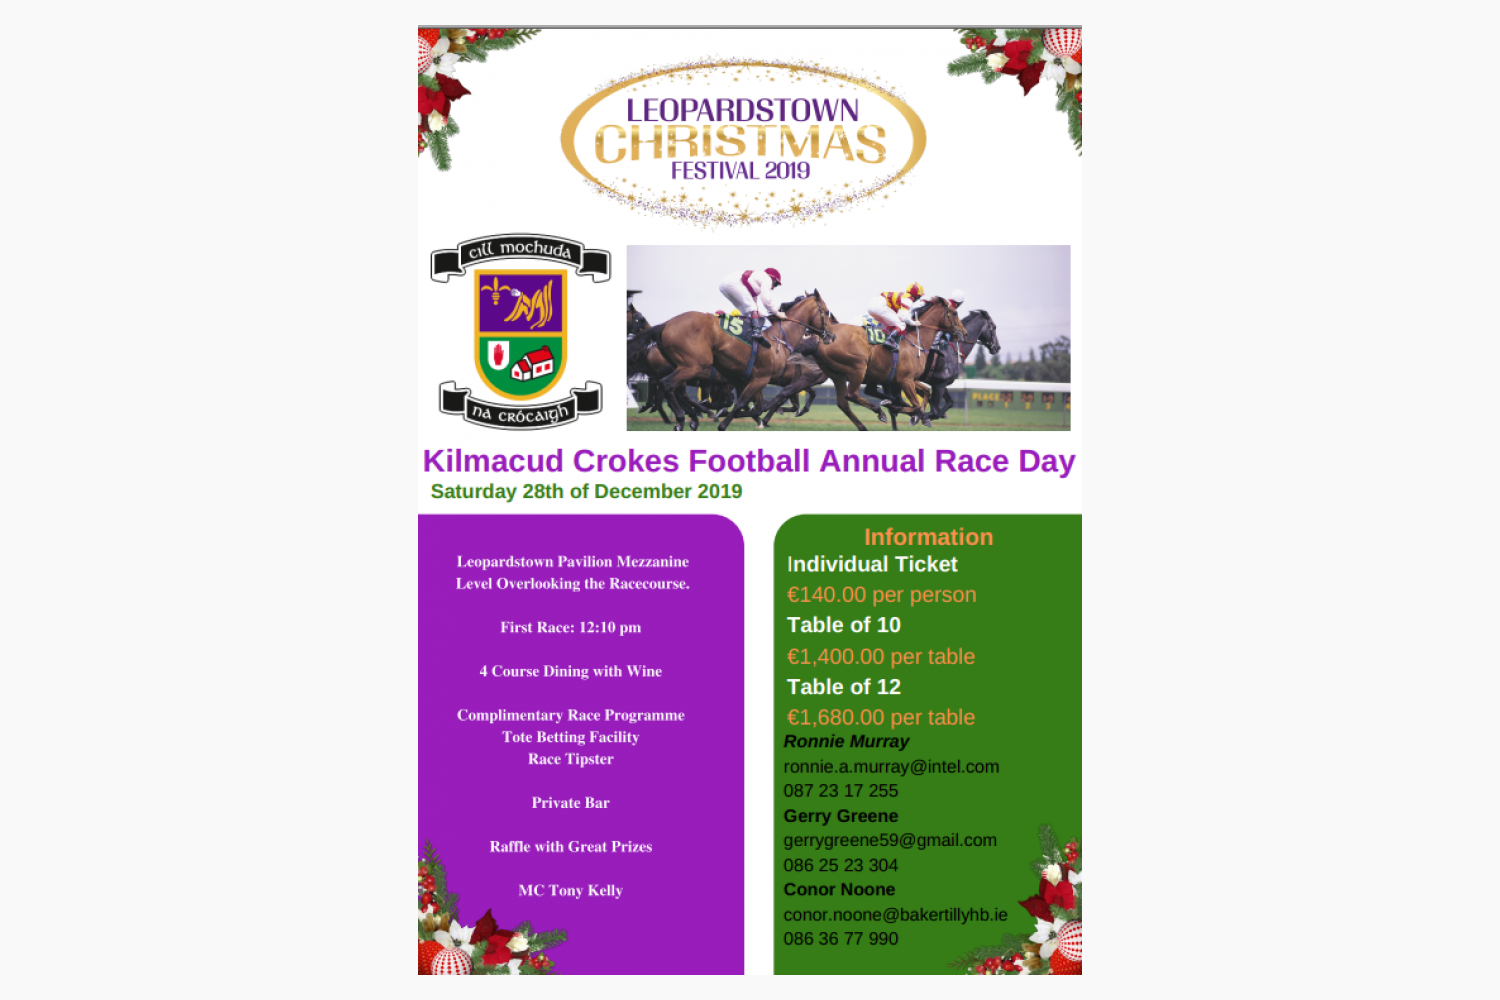 Kilmacud Crokes Football Annual Race Day Fundraiser - Saturday December 28th